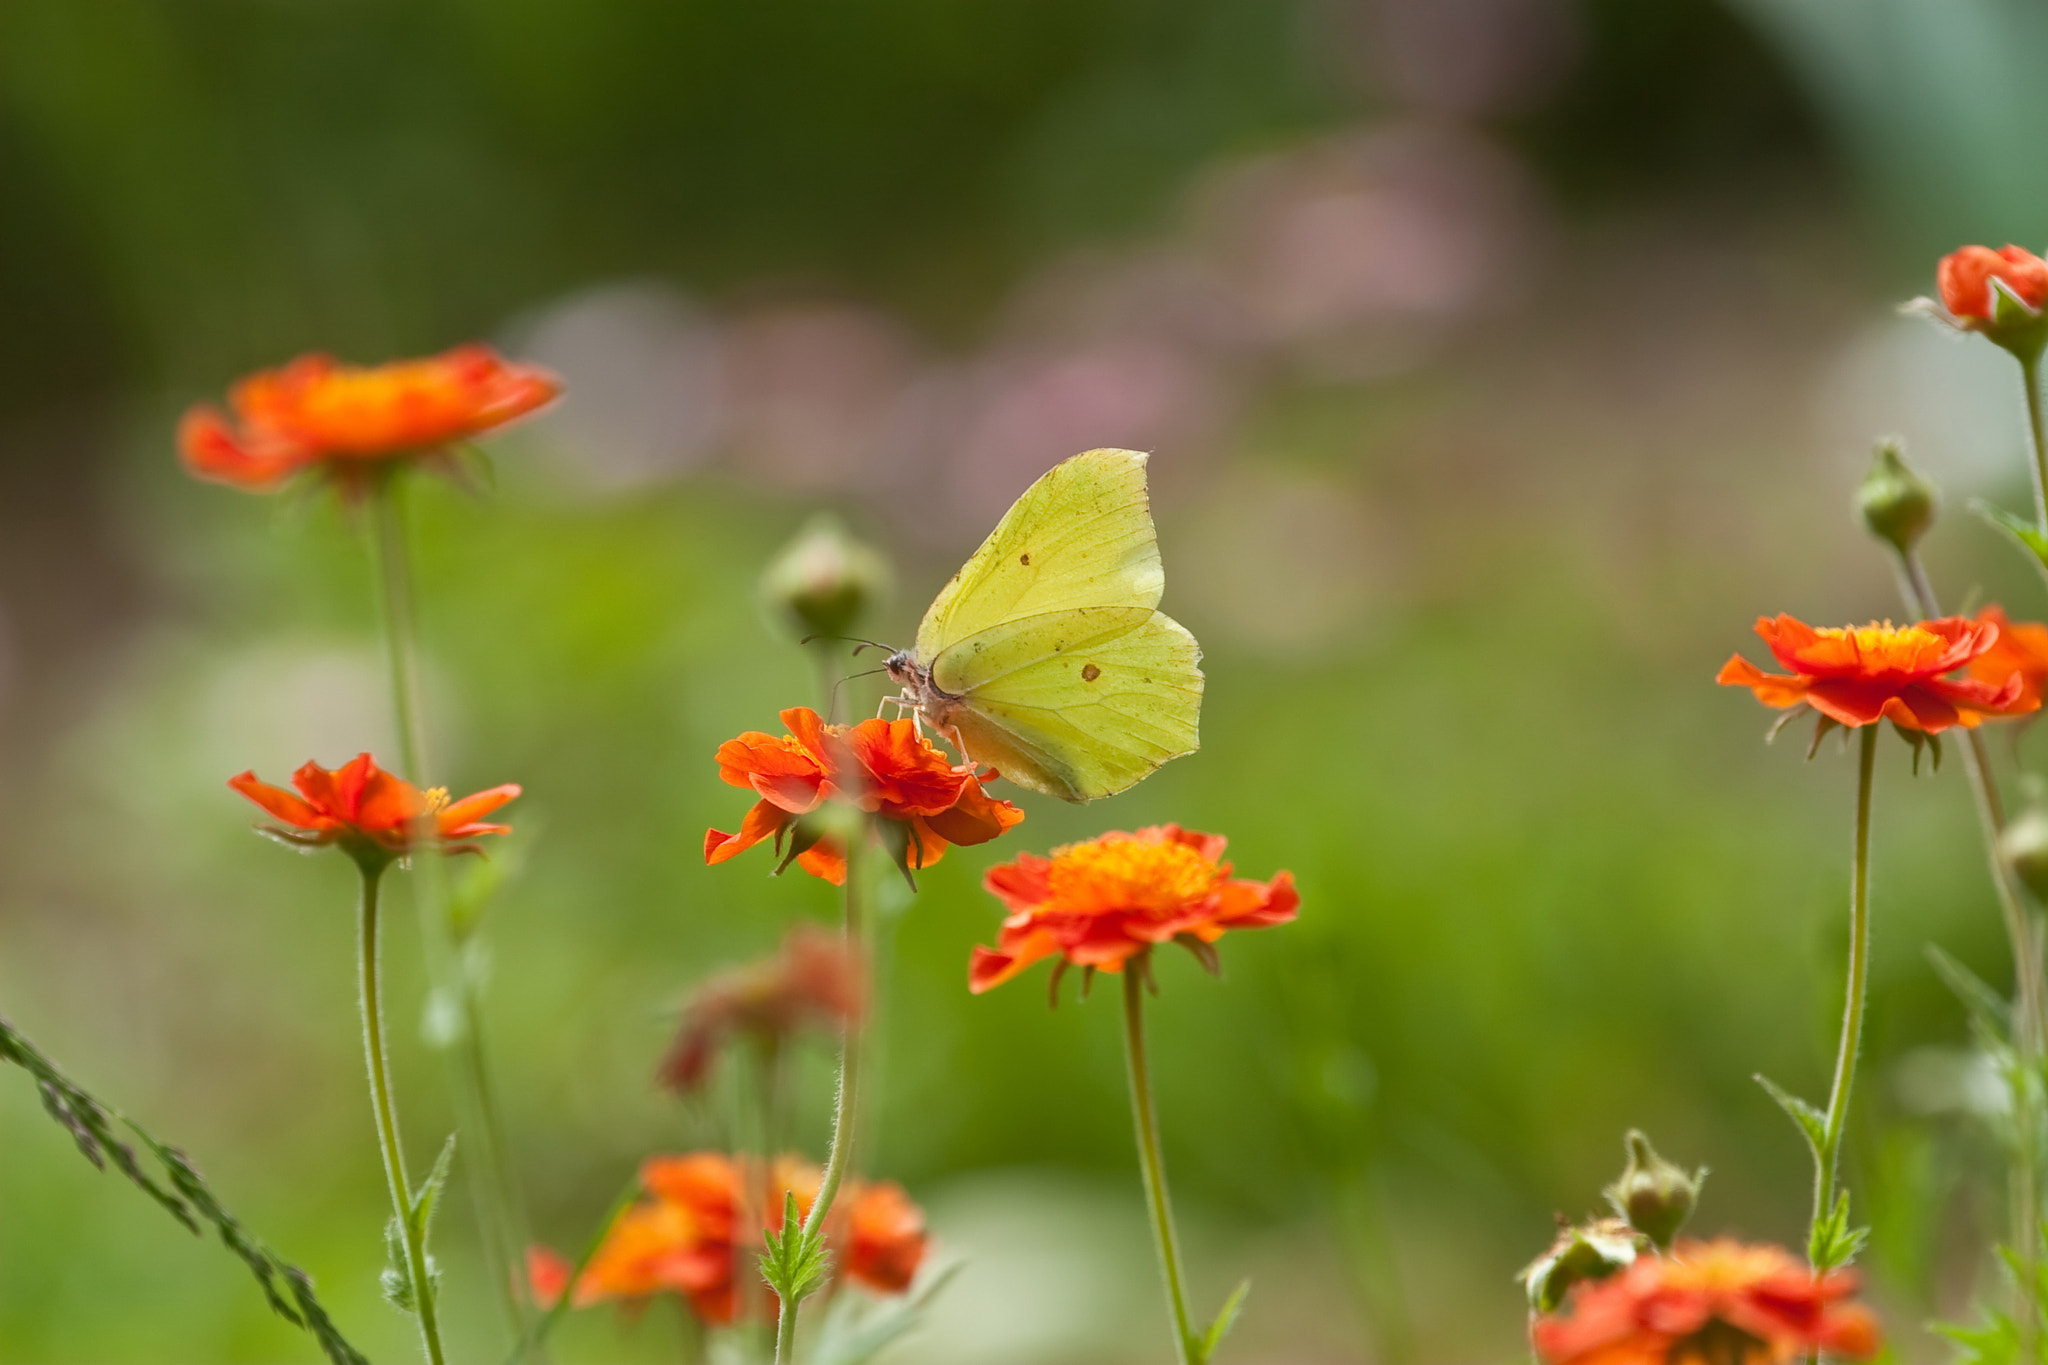 Photograph Yellow butterfly by Andrey Philippov on 500px